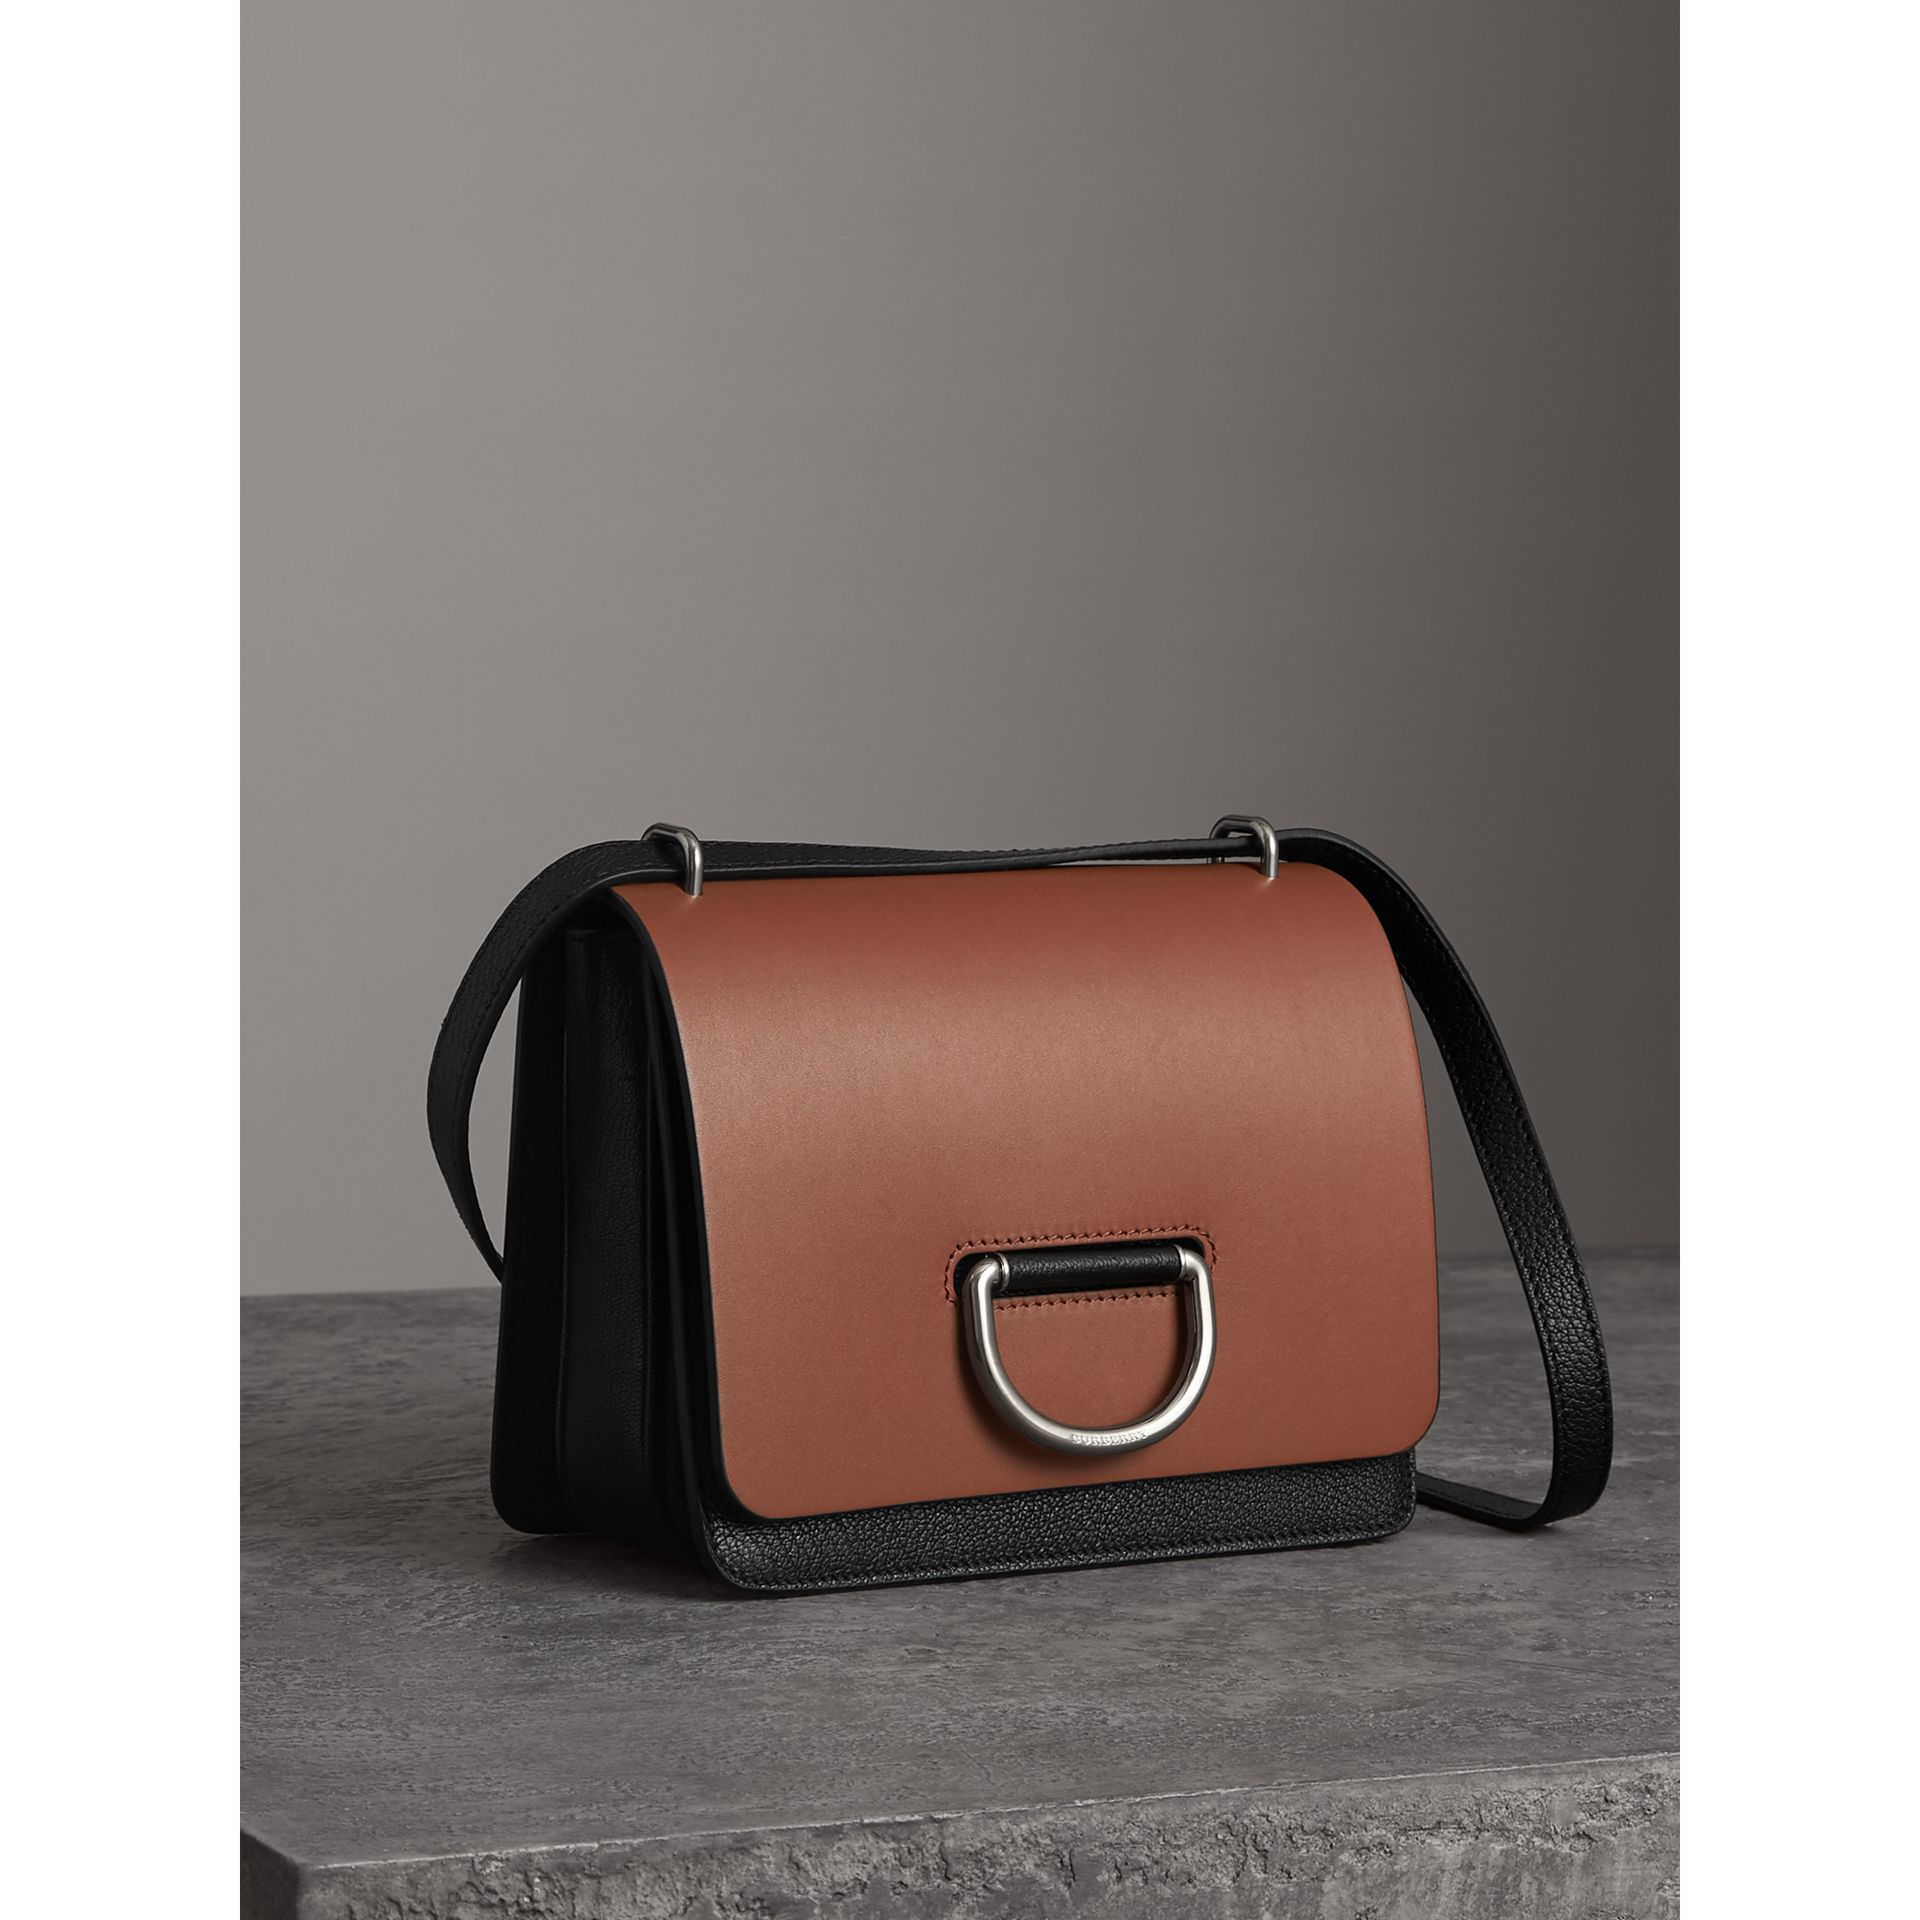 Borsa The D-ring piccola in pelle (Marroncino/nero) - Donna | Burberry - immagine della galleria 6